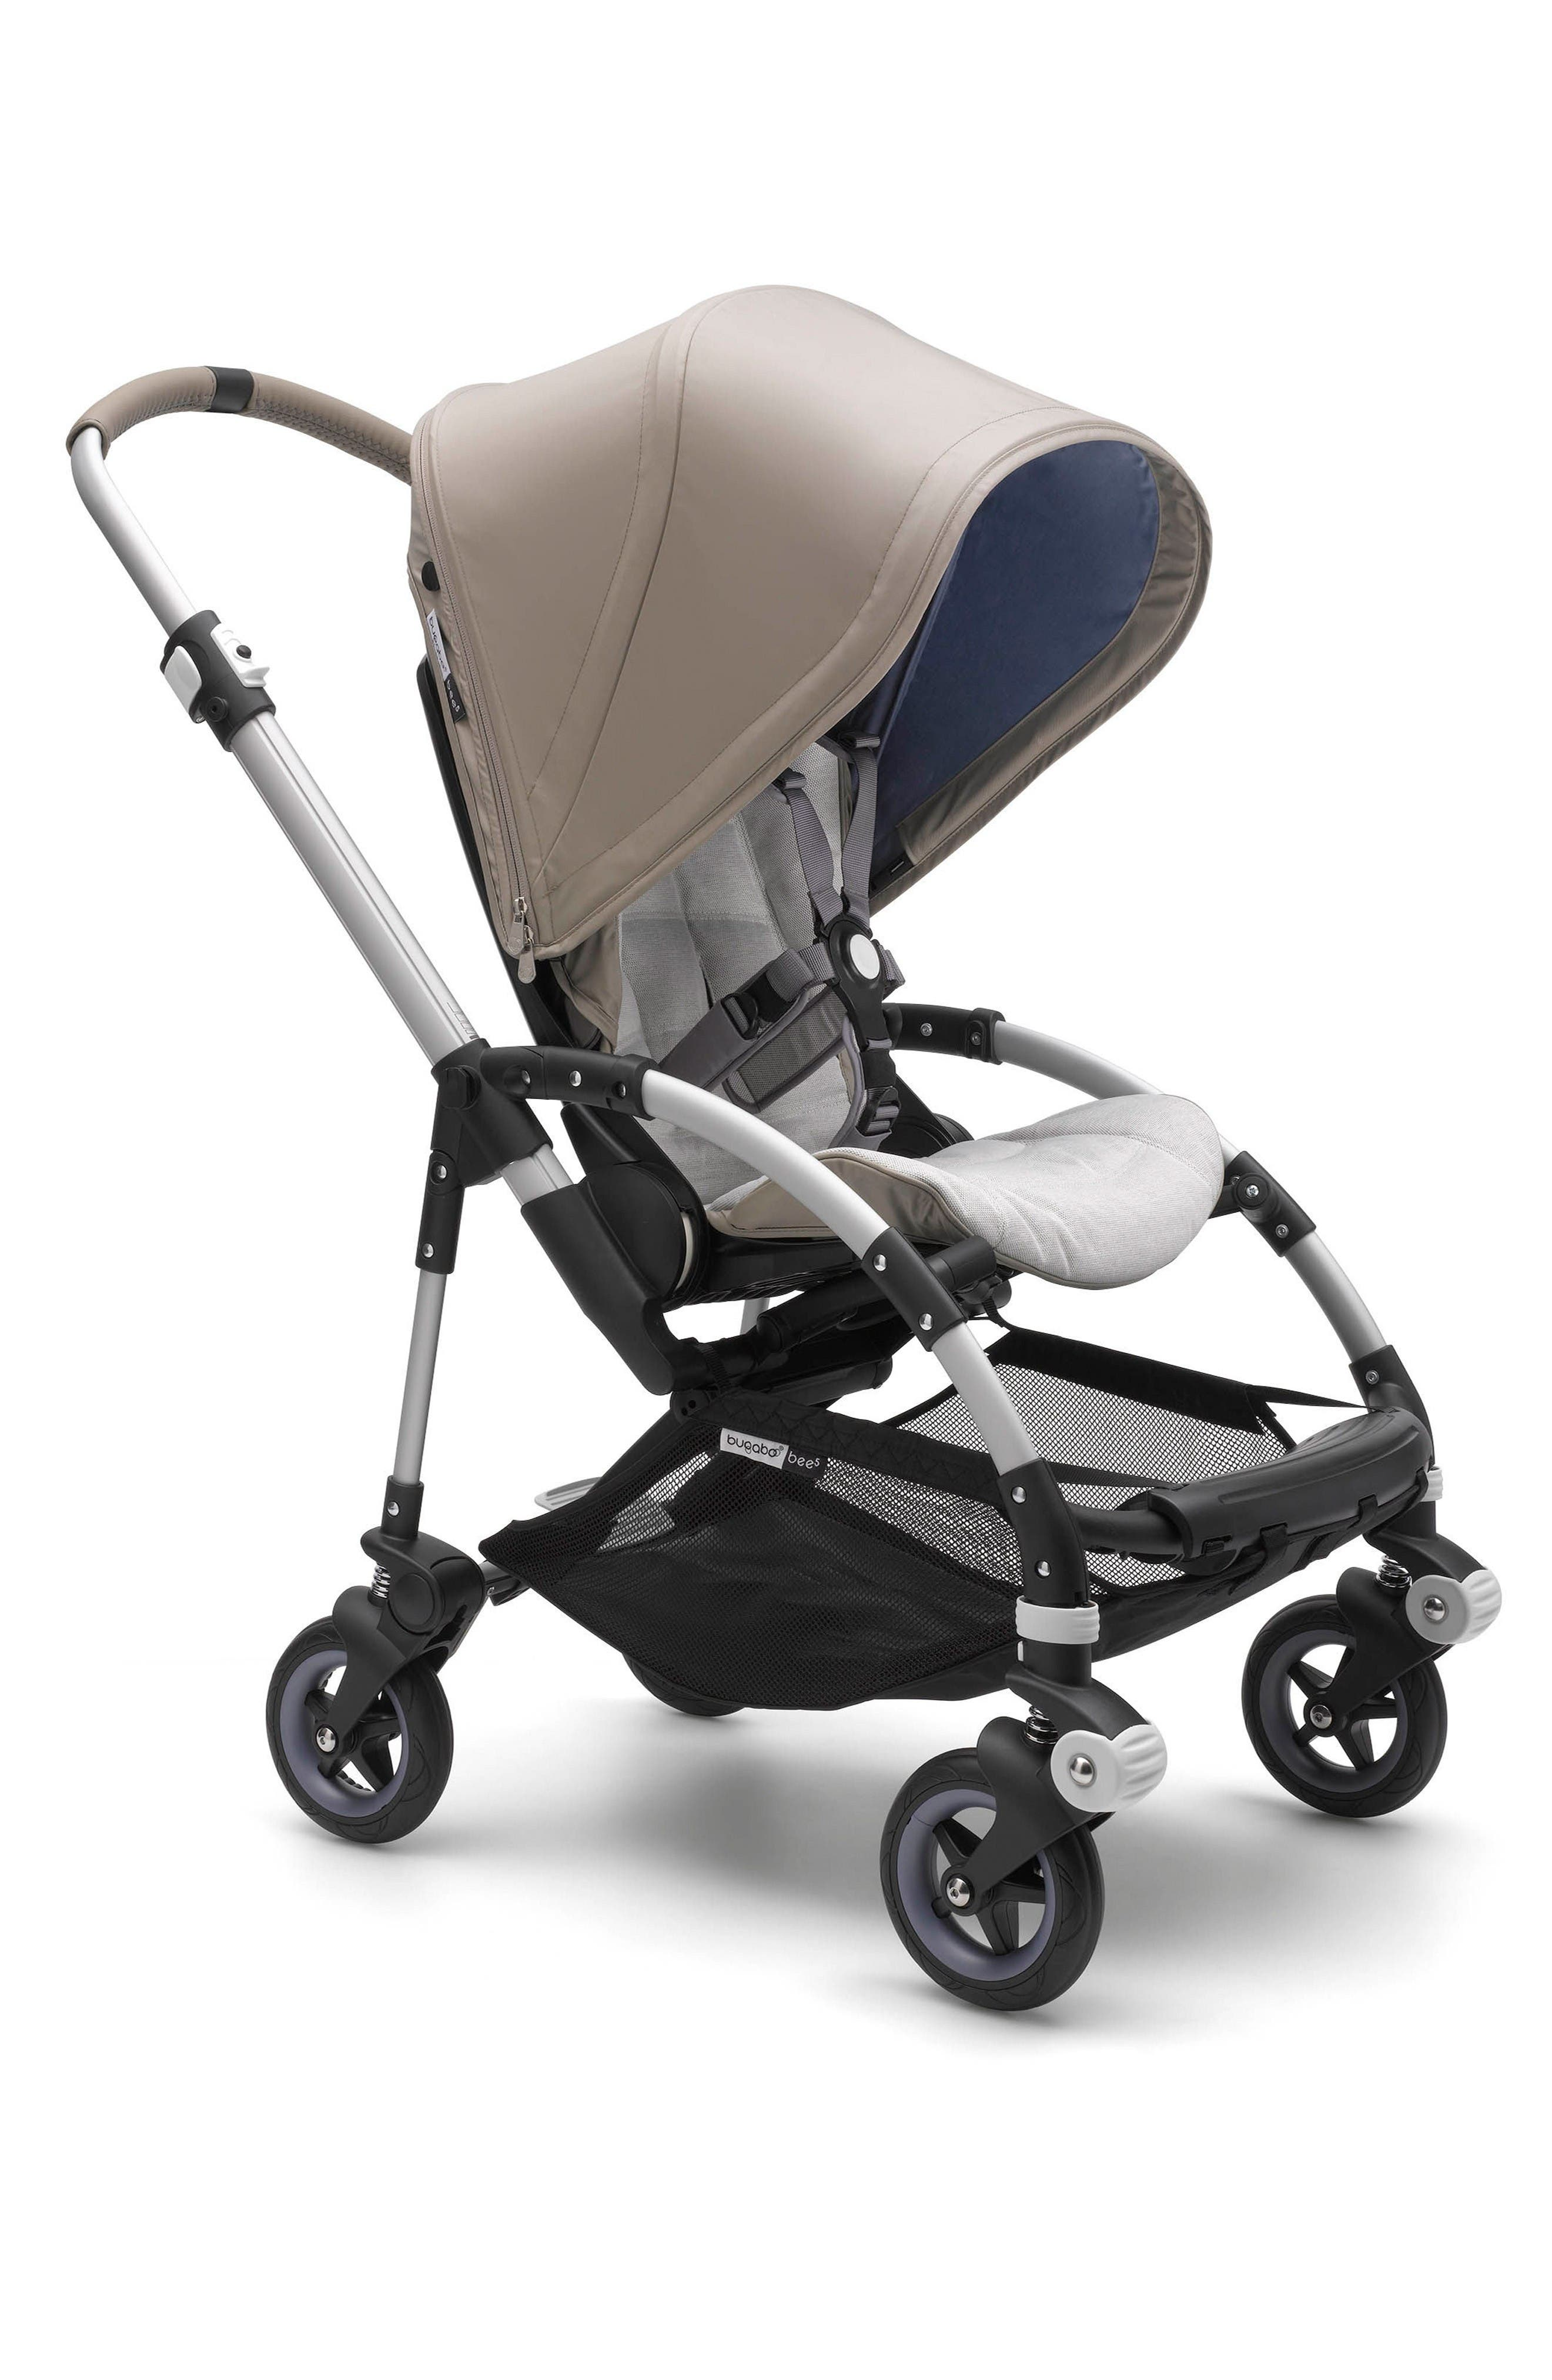 Main Image - Bugaboo Bee5 Two-Tone Taupe Limited Edition Stroller with Lavender Accents